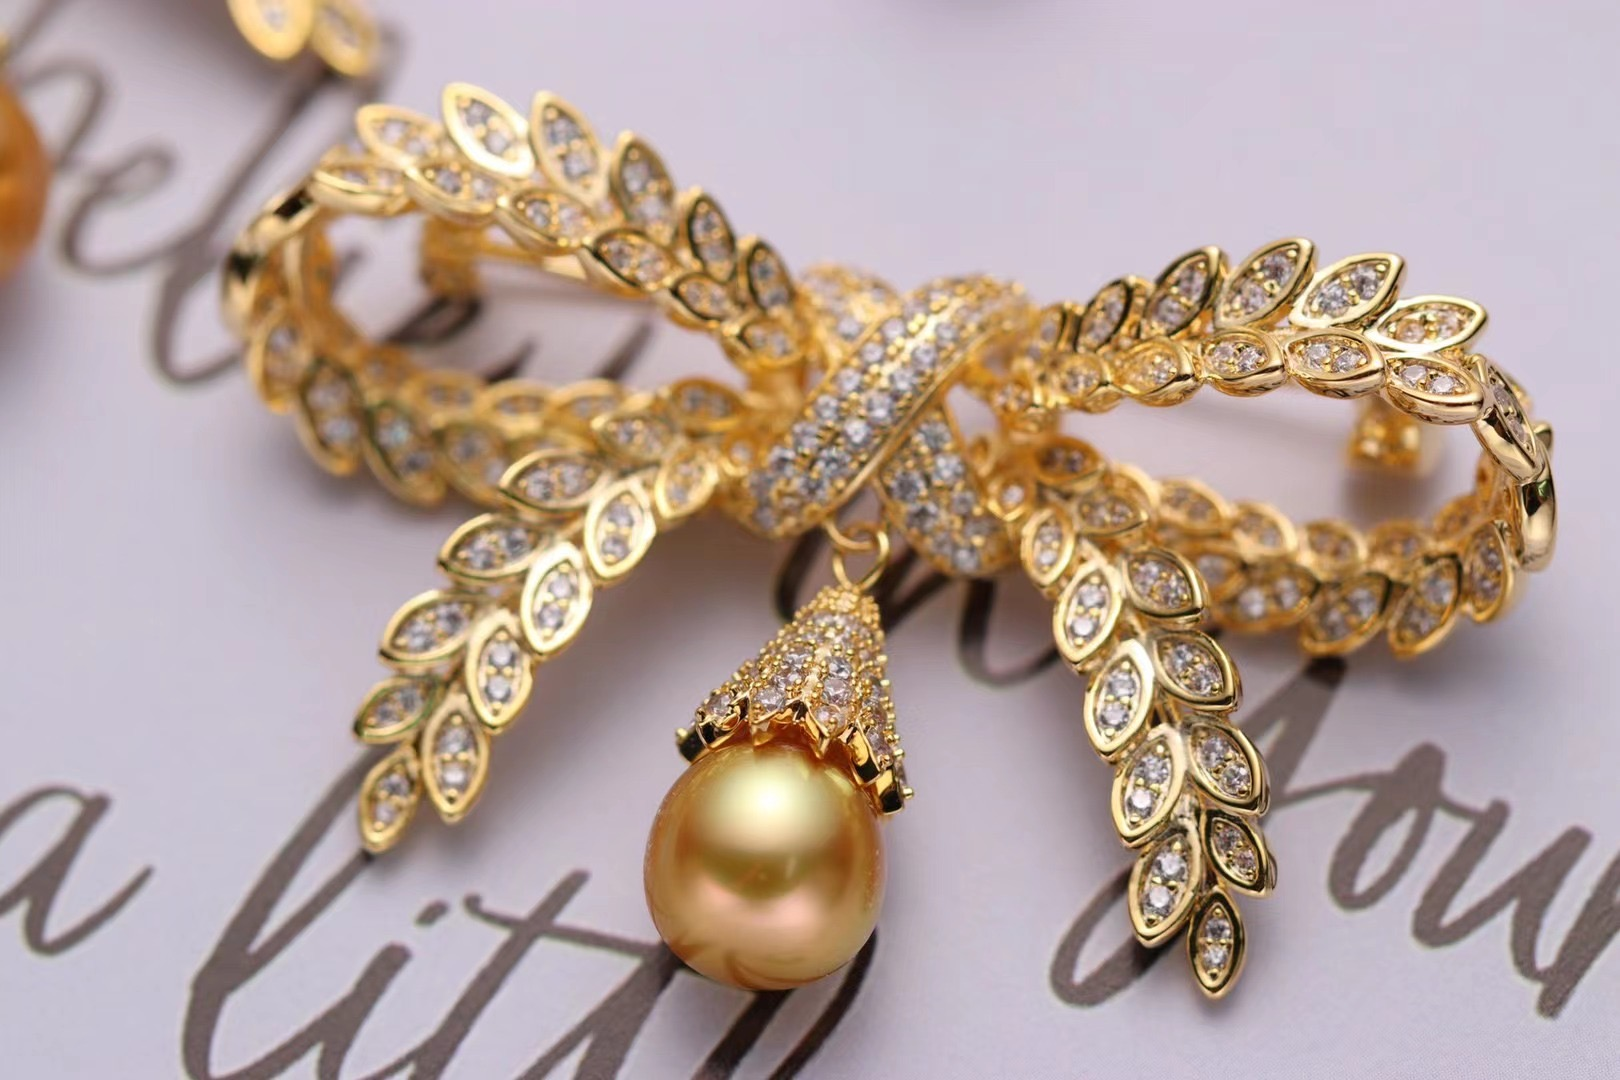 Cuiwei Huizhi wheat bow brooch with Australian white gold beads is elegant and elegant, delicate and vivid